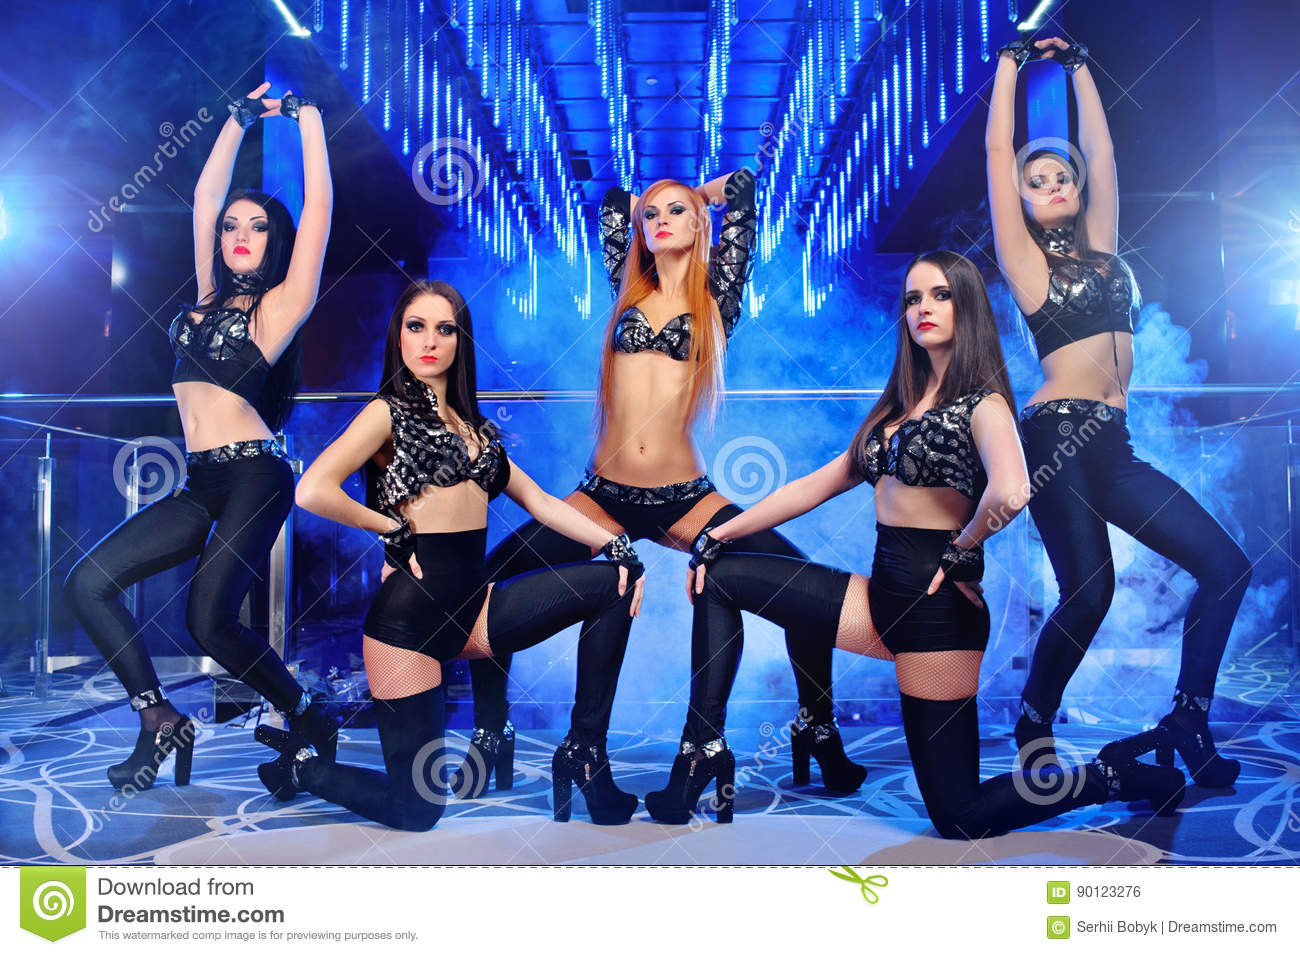 Sorry, exotic girl dancers group for that